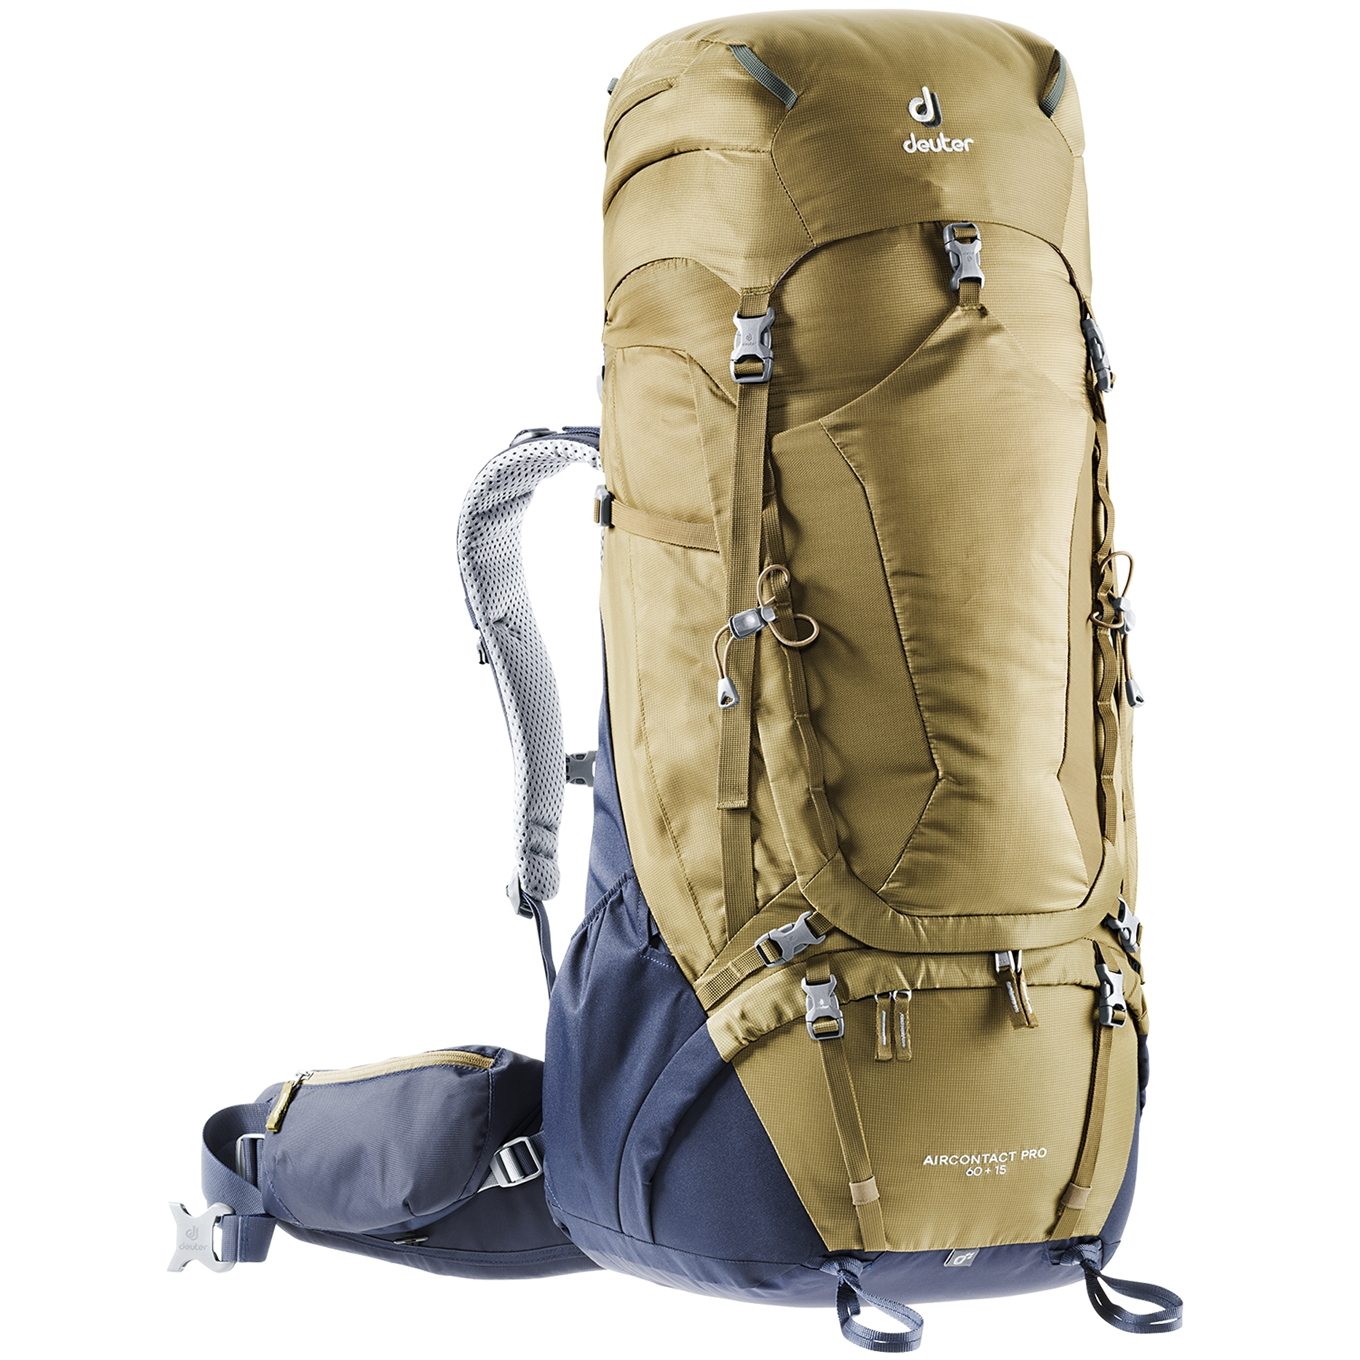 Deuter Aircontact Pro 60 + 15 clay/navy backpack <br/></noscript><img class=